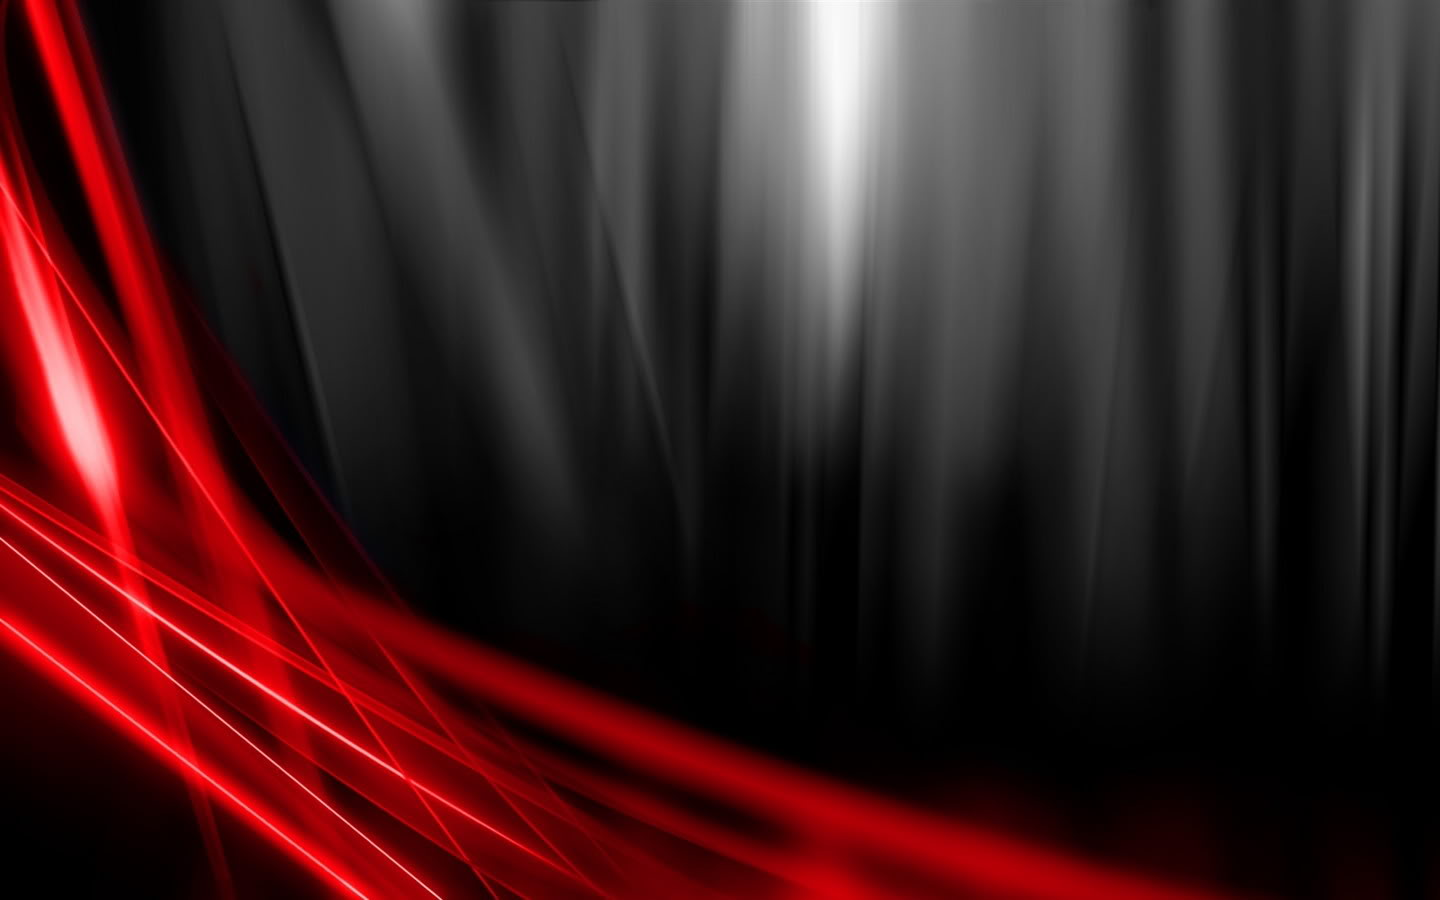 Black And Red Wallpaper Wallpapers HD Quality 1440x900